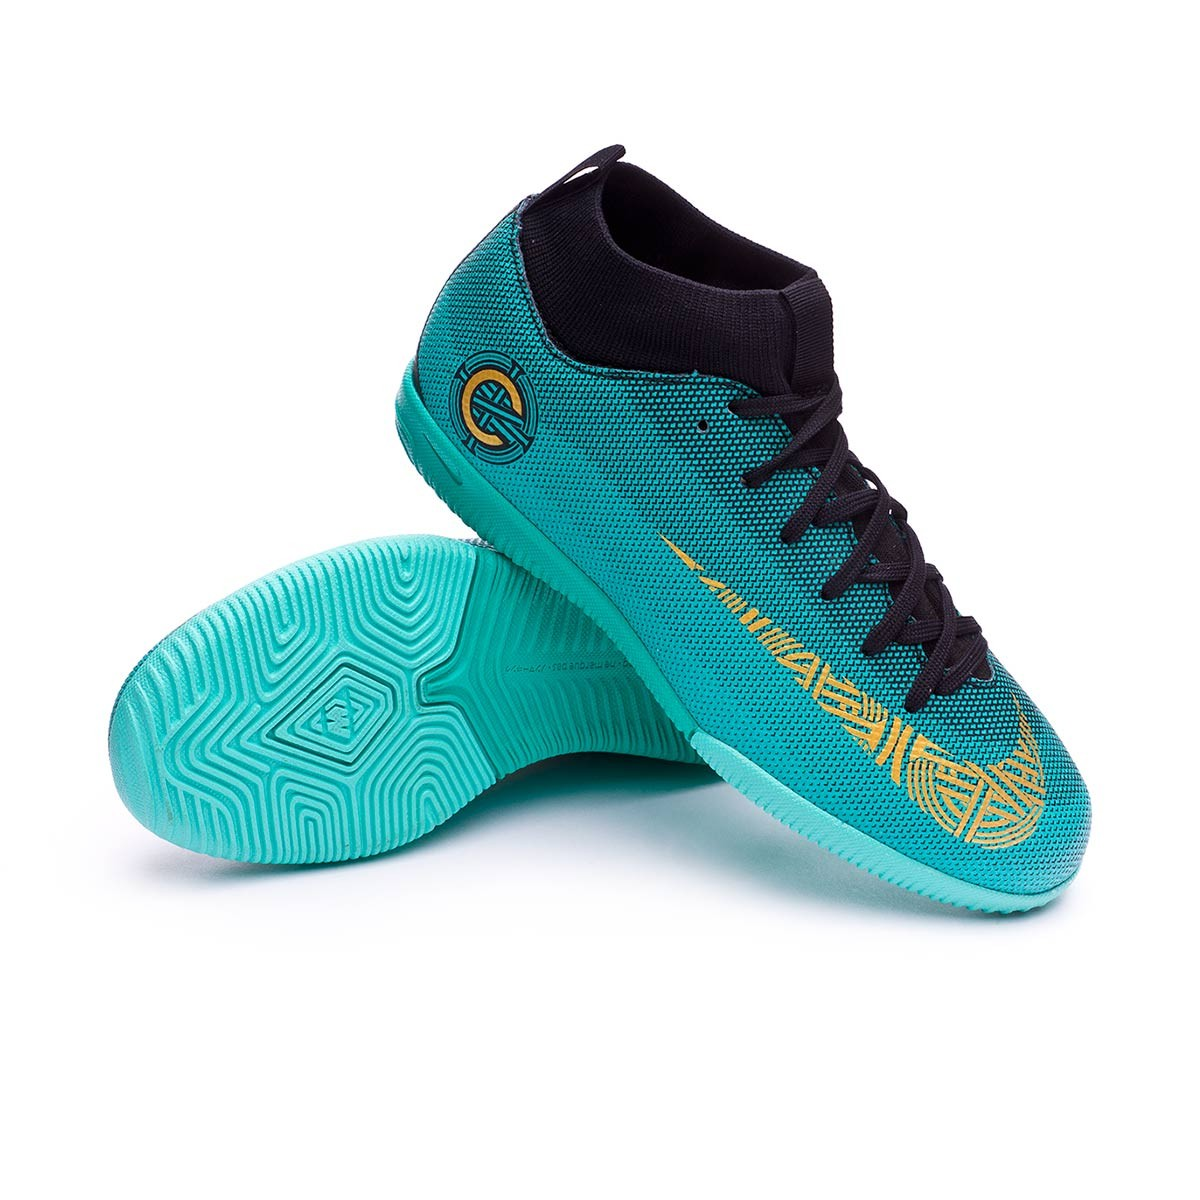 online store 4040c fa56b Zapatilla Mercurial Superfly VI Academy GS CR7 IC Niño Clear jade-Metallic  vivid gold-Black